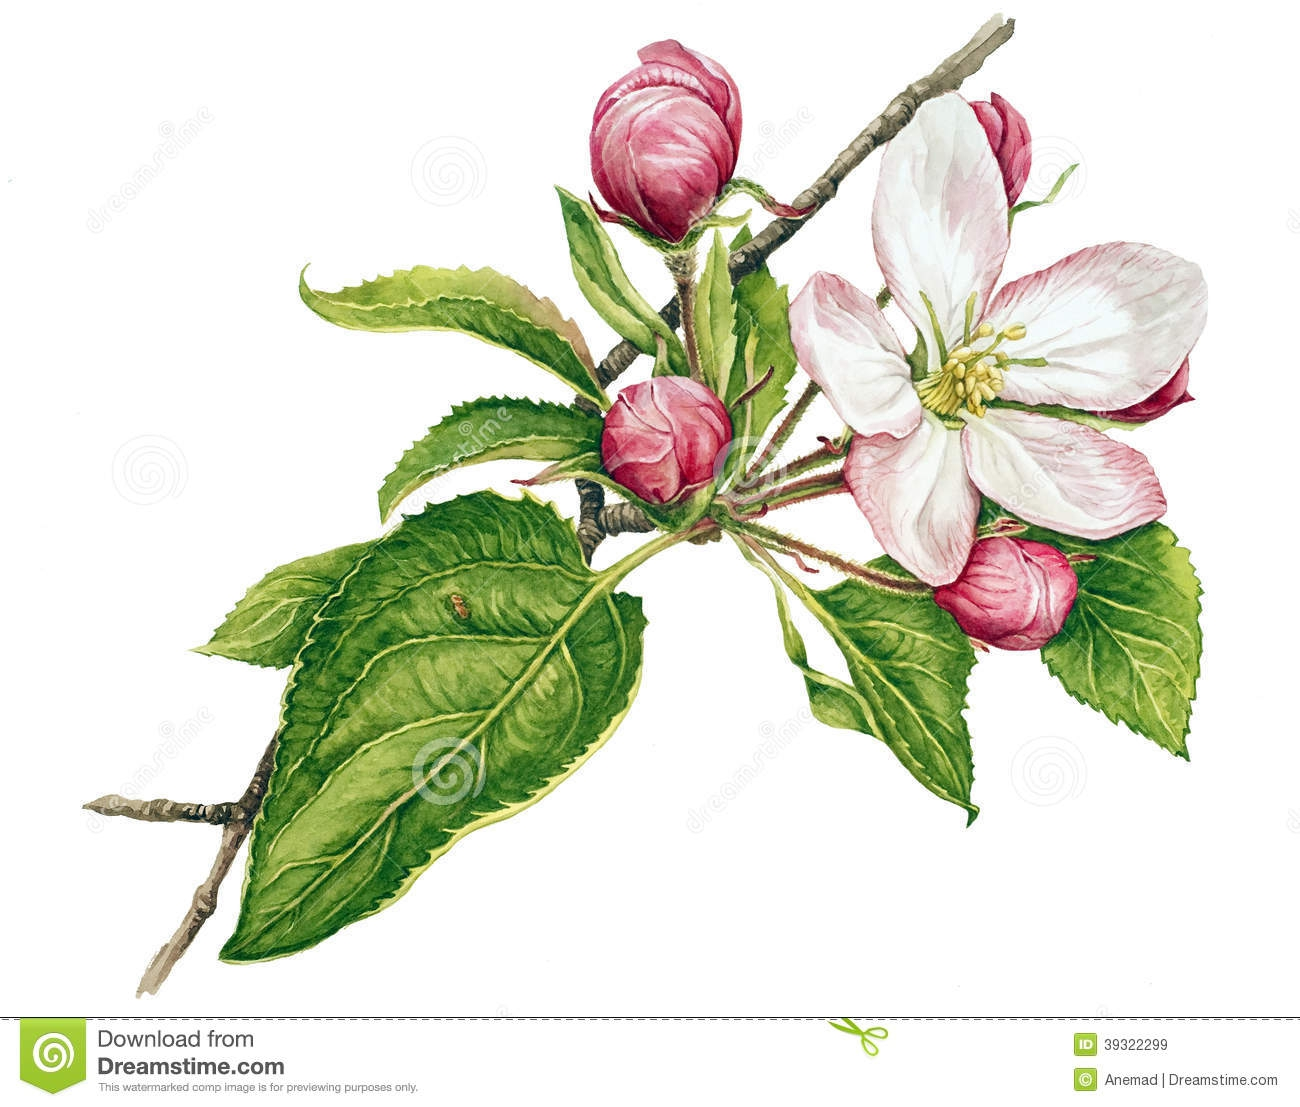 Apple Blossom clipart #2, Download drawings